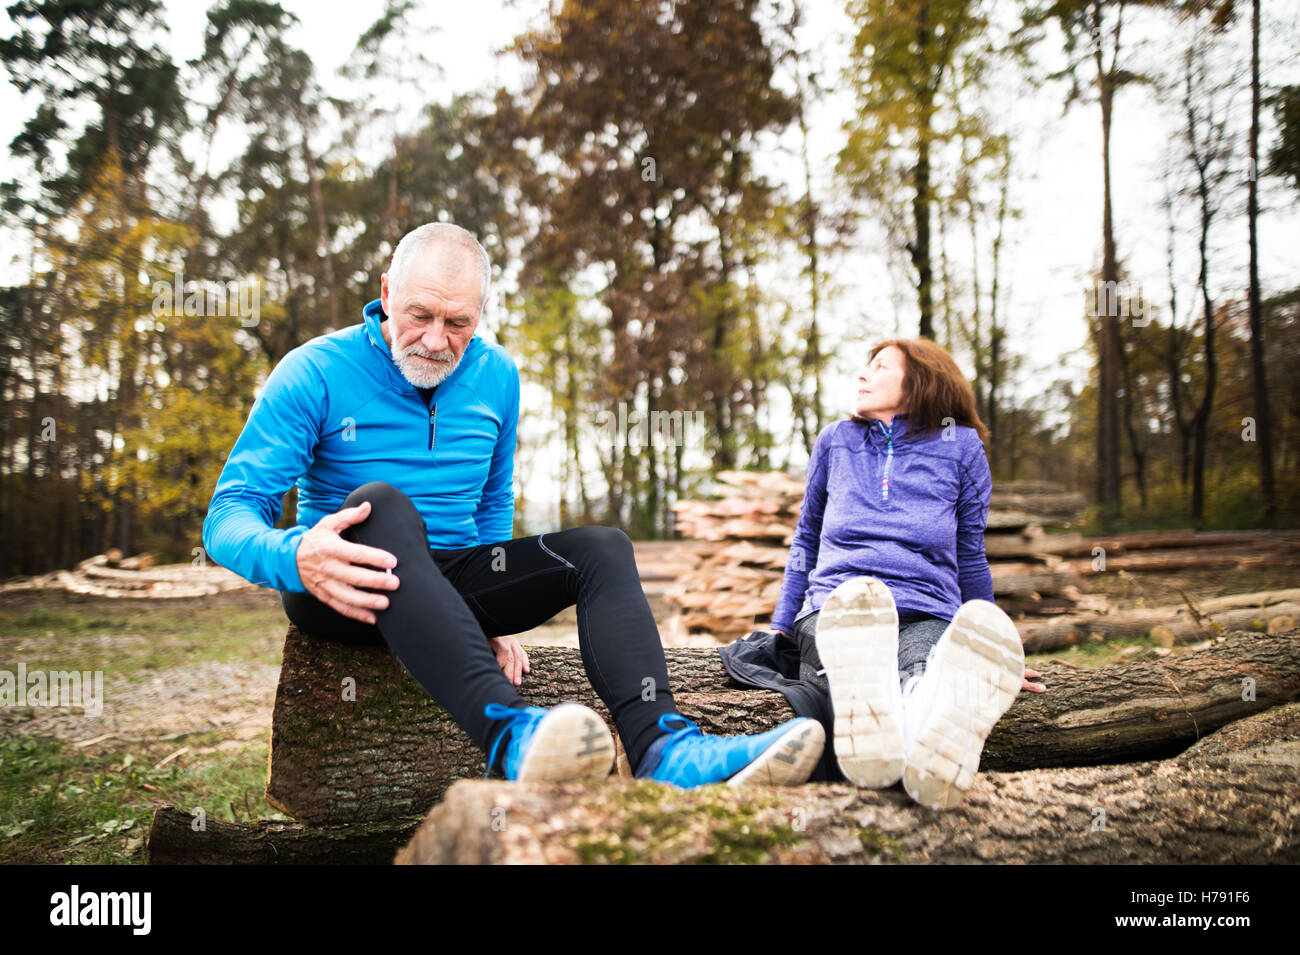 Senior runners sitting on wooden logs, resting. Autumn nature. - Stock Image